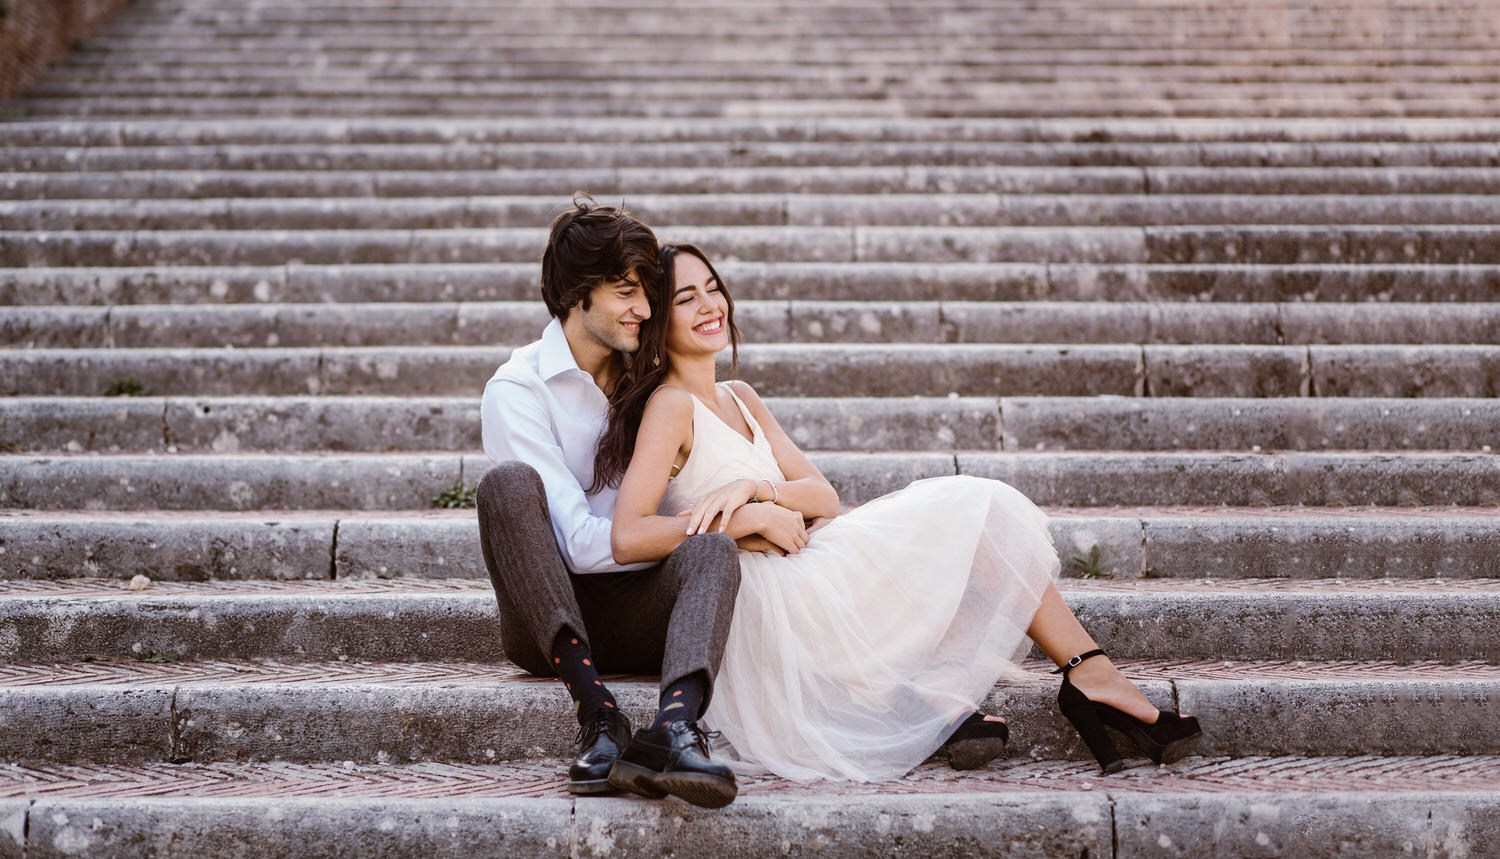 gs wedding photographer rome 0207 - Giulia & Simone - Elegant Couple Shooting in Rome